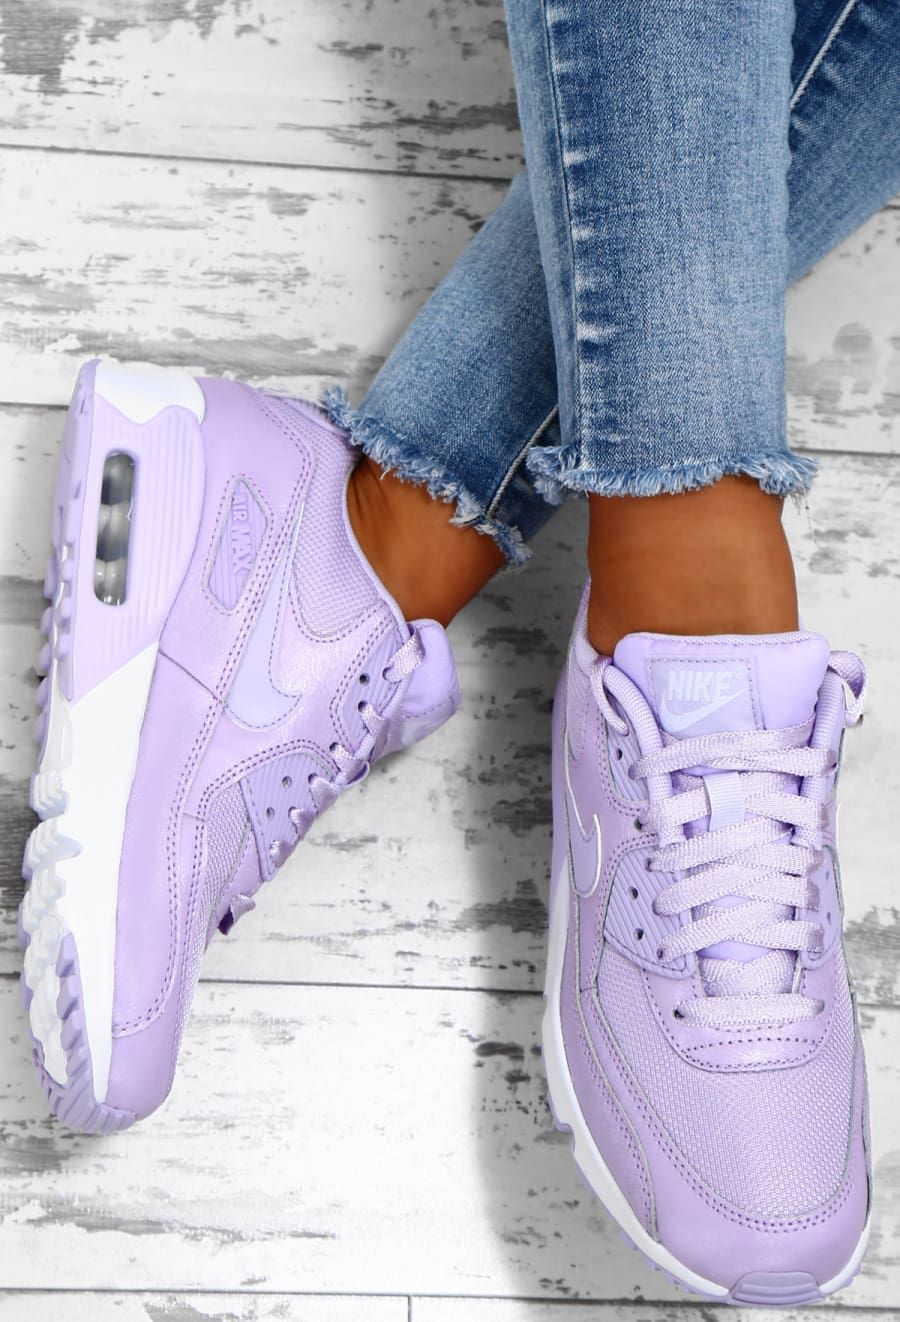 6c03cd68a Nike Air Max 90 Lilac Trainers - UK 3 | Sneakers | Nike air shoes ...